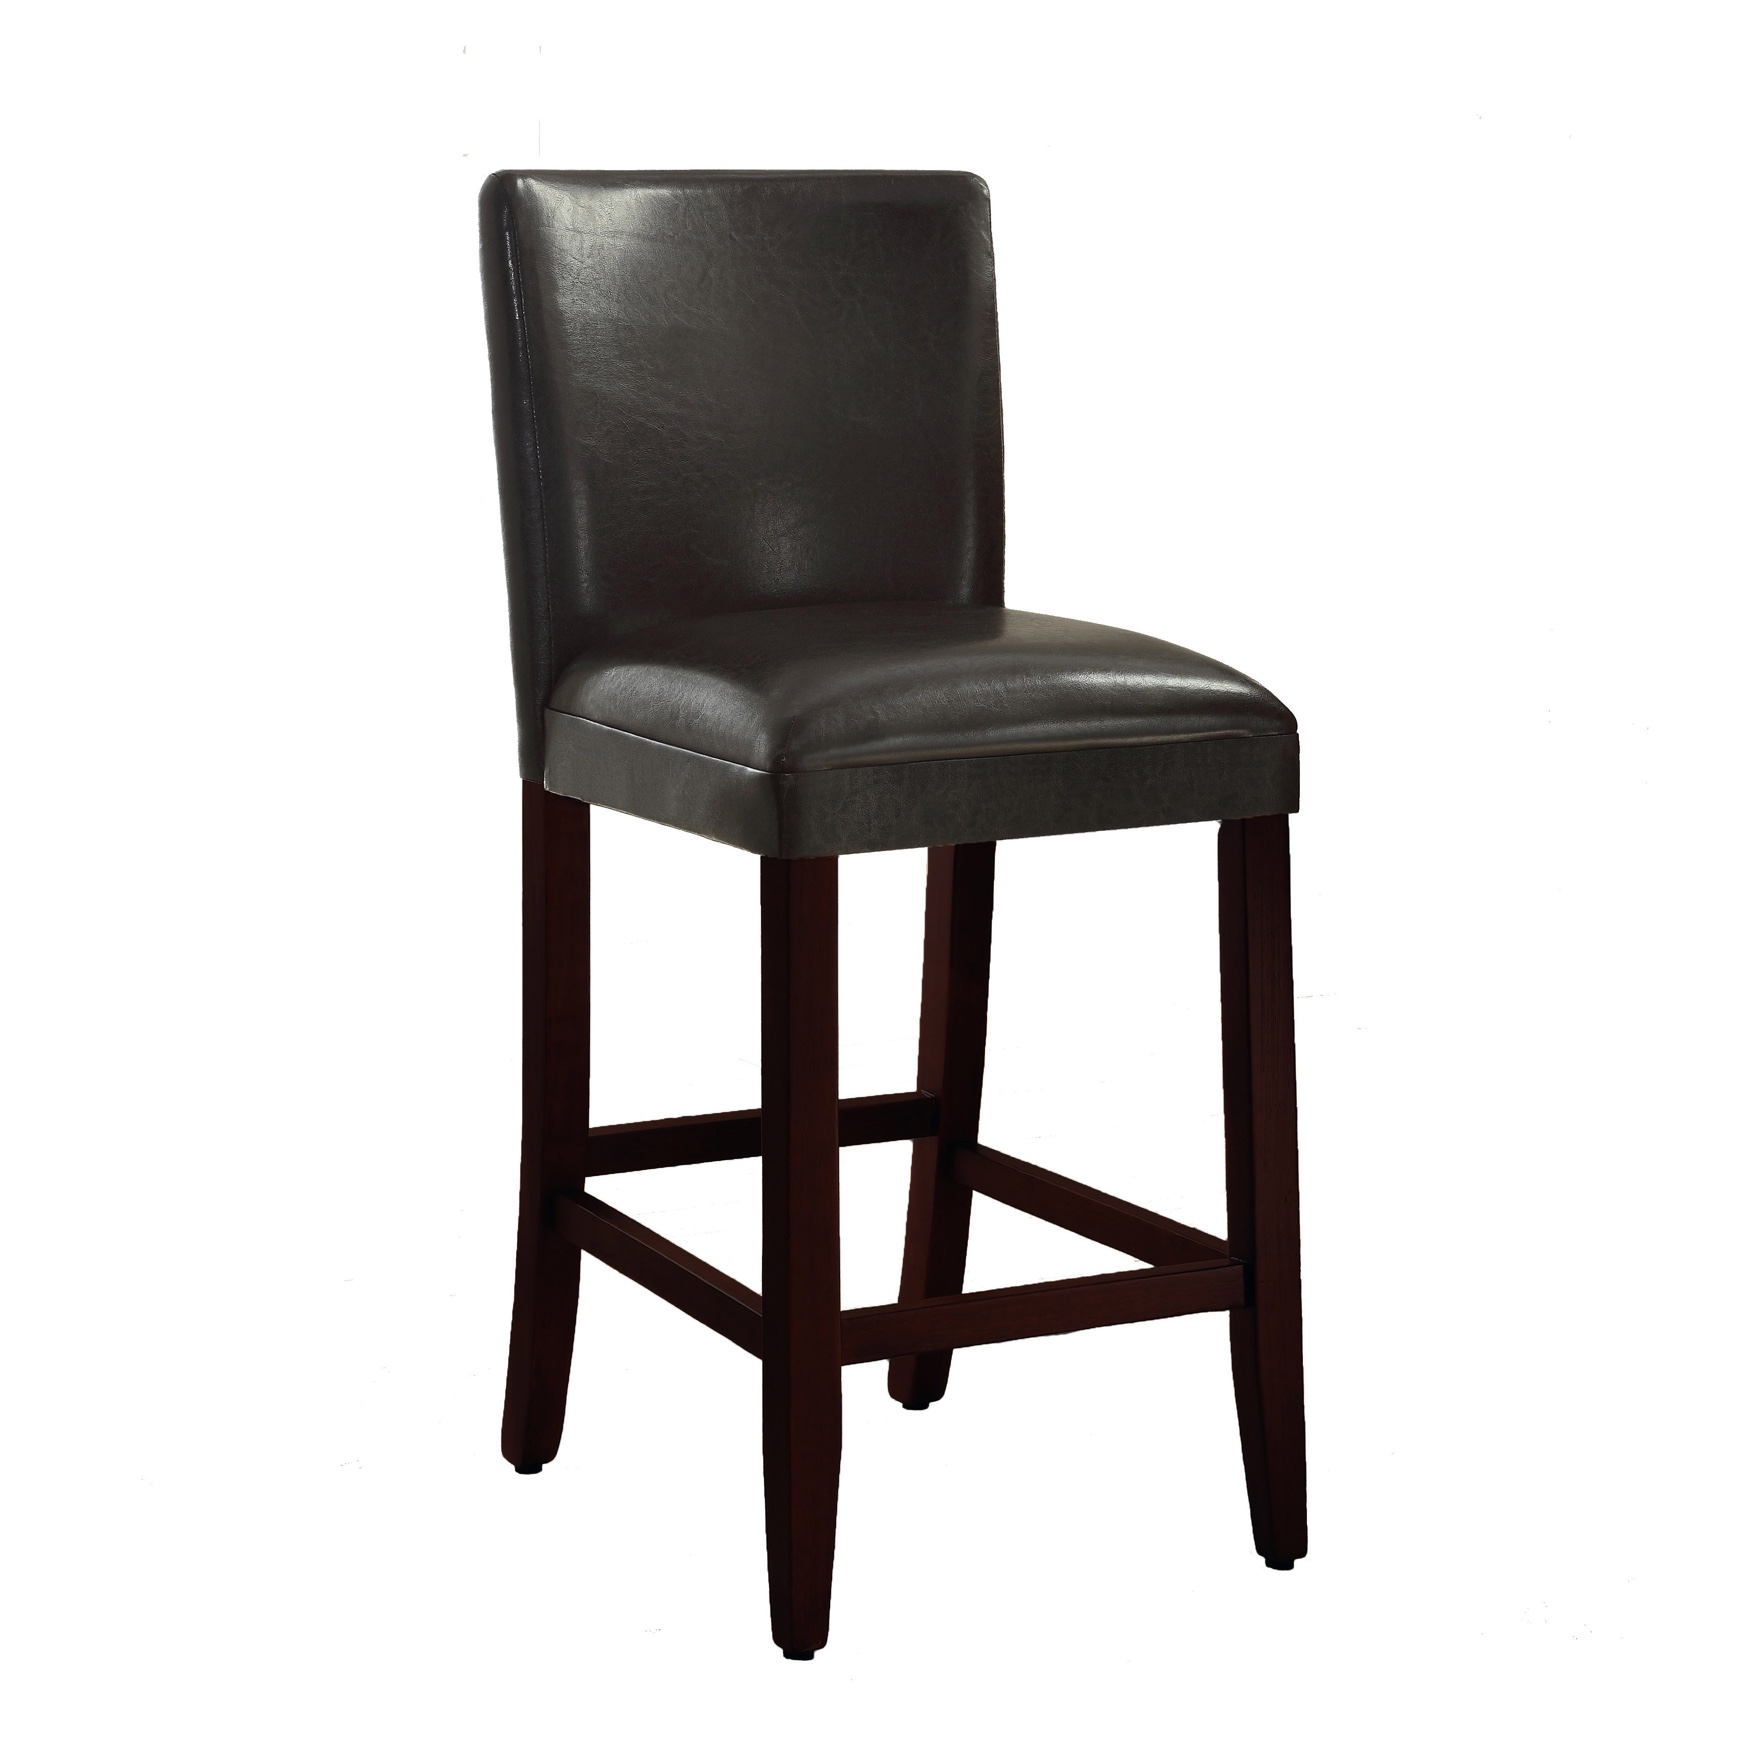 Deluxe Barstool by 4D Concepts, BLACK